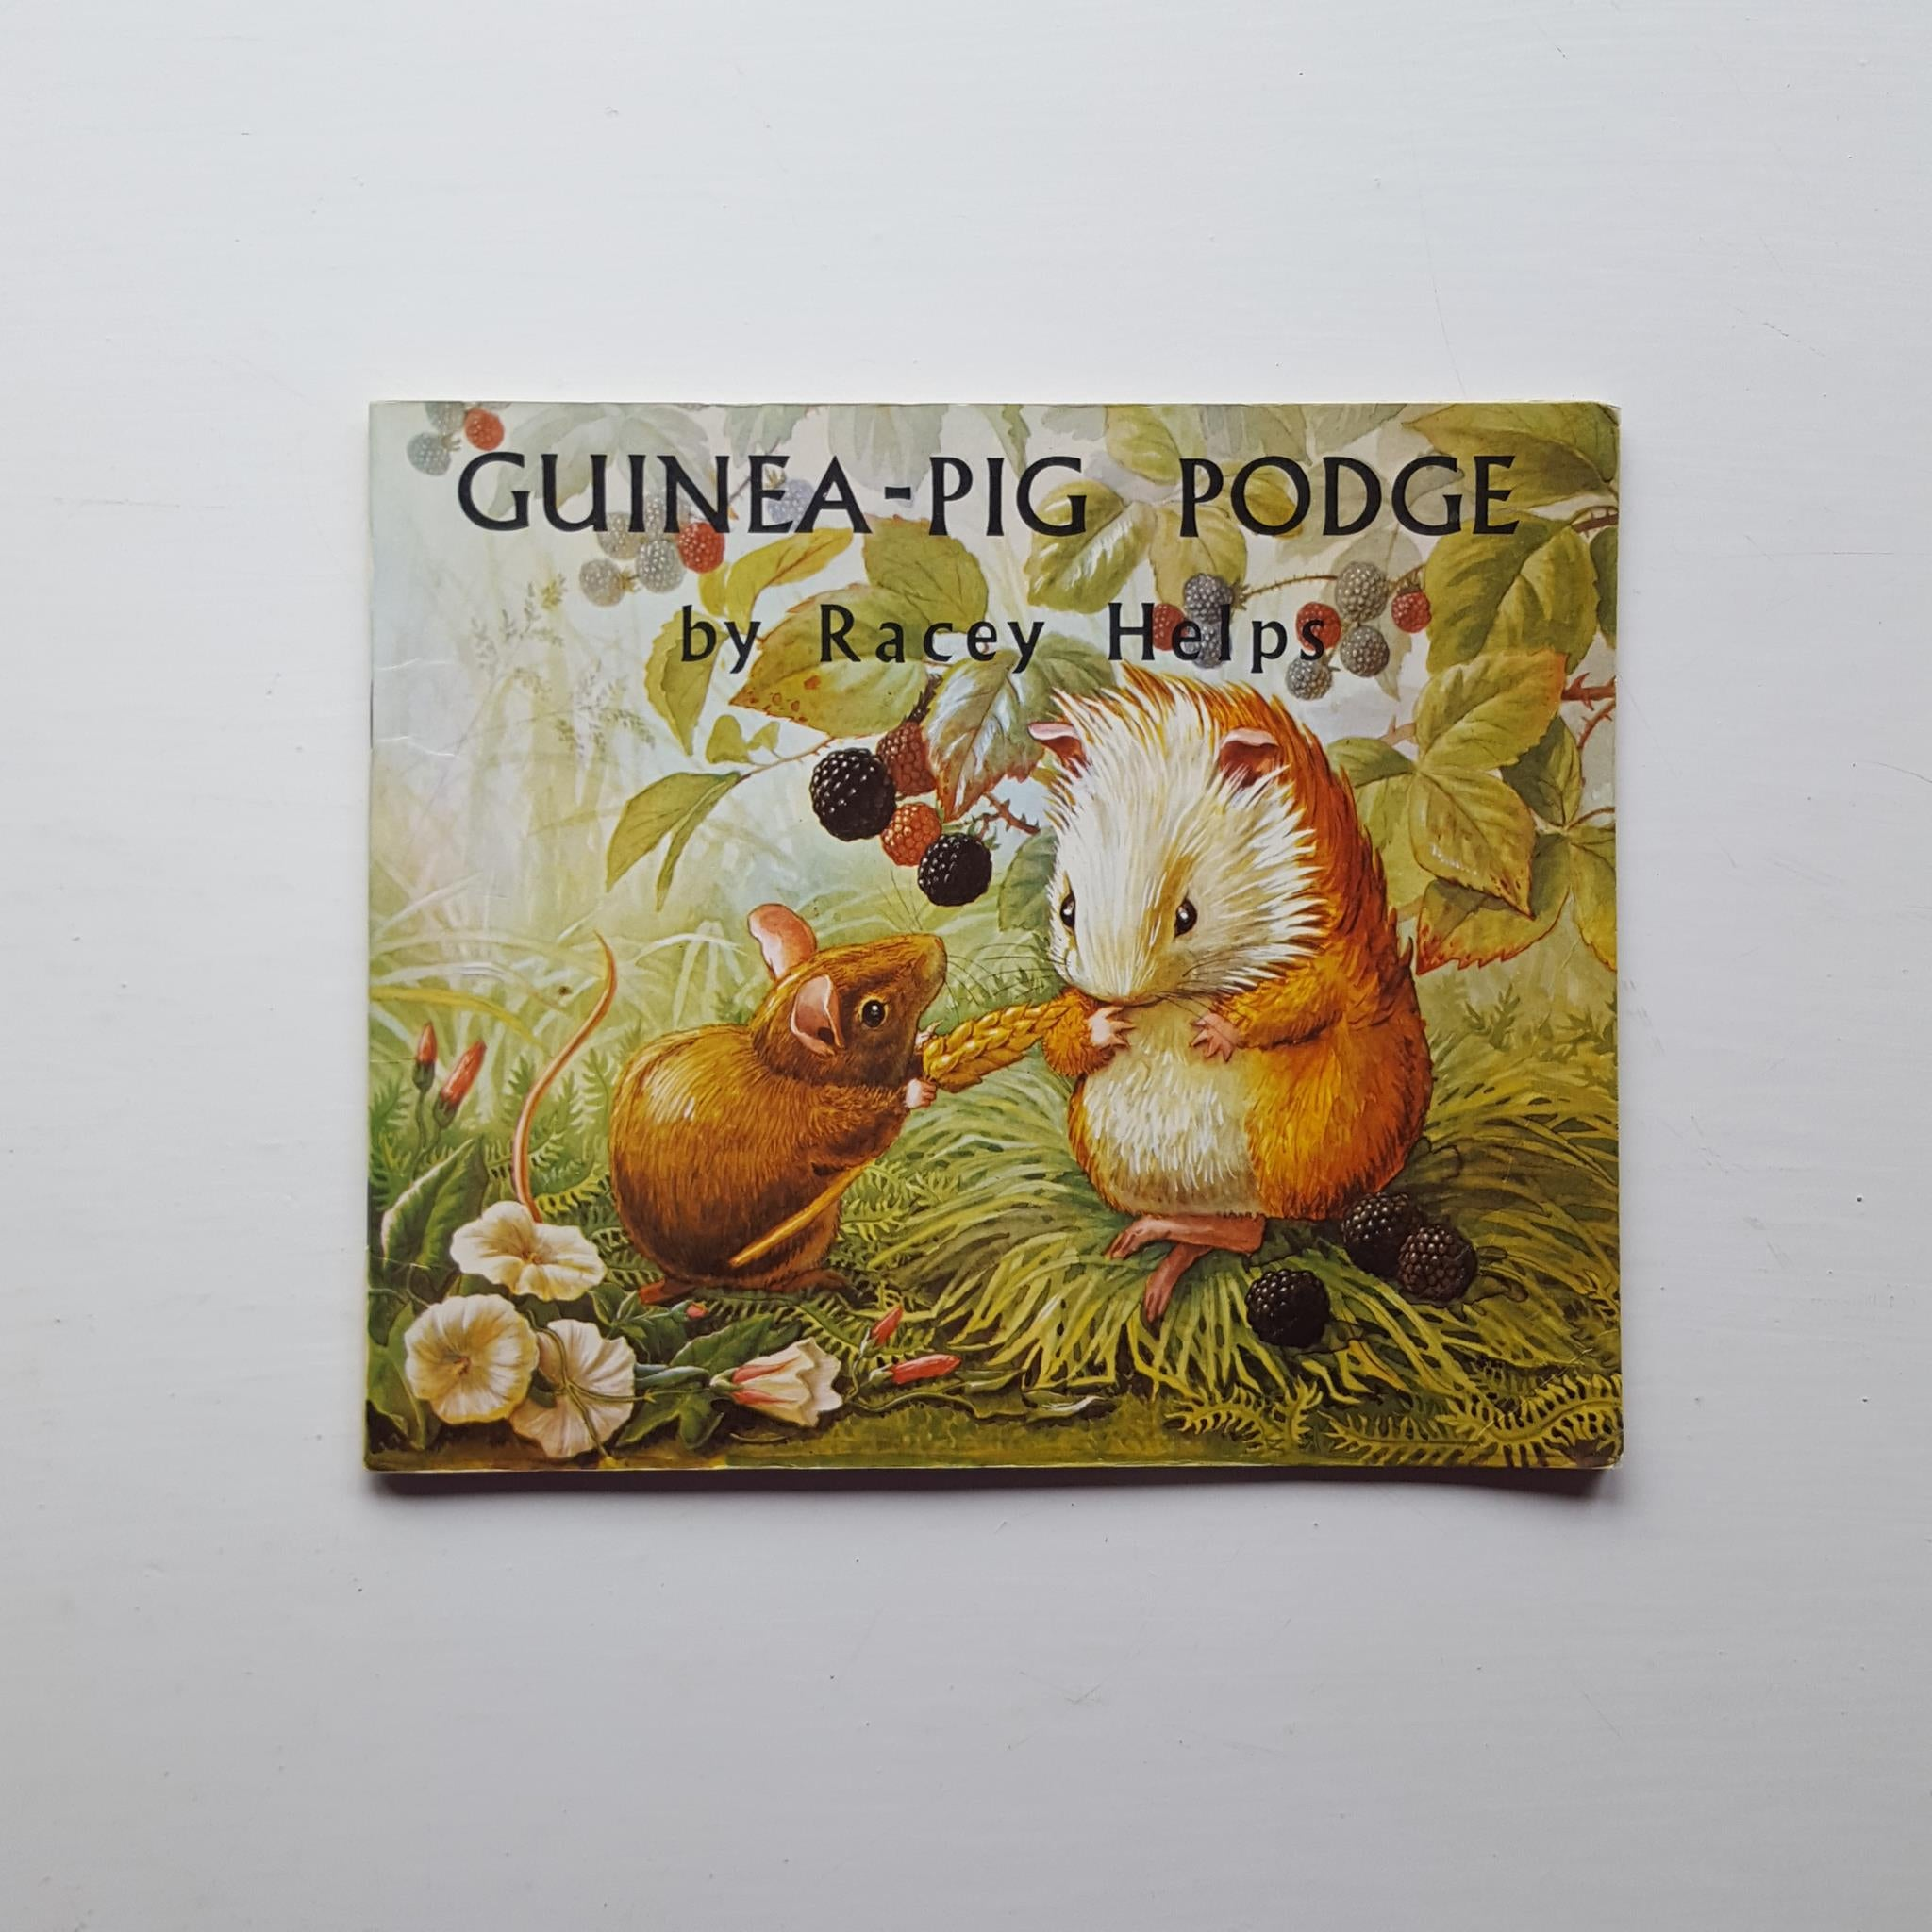 Guinea-Pig Podge by Racey Helps